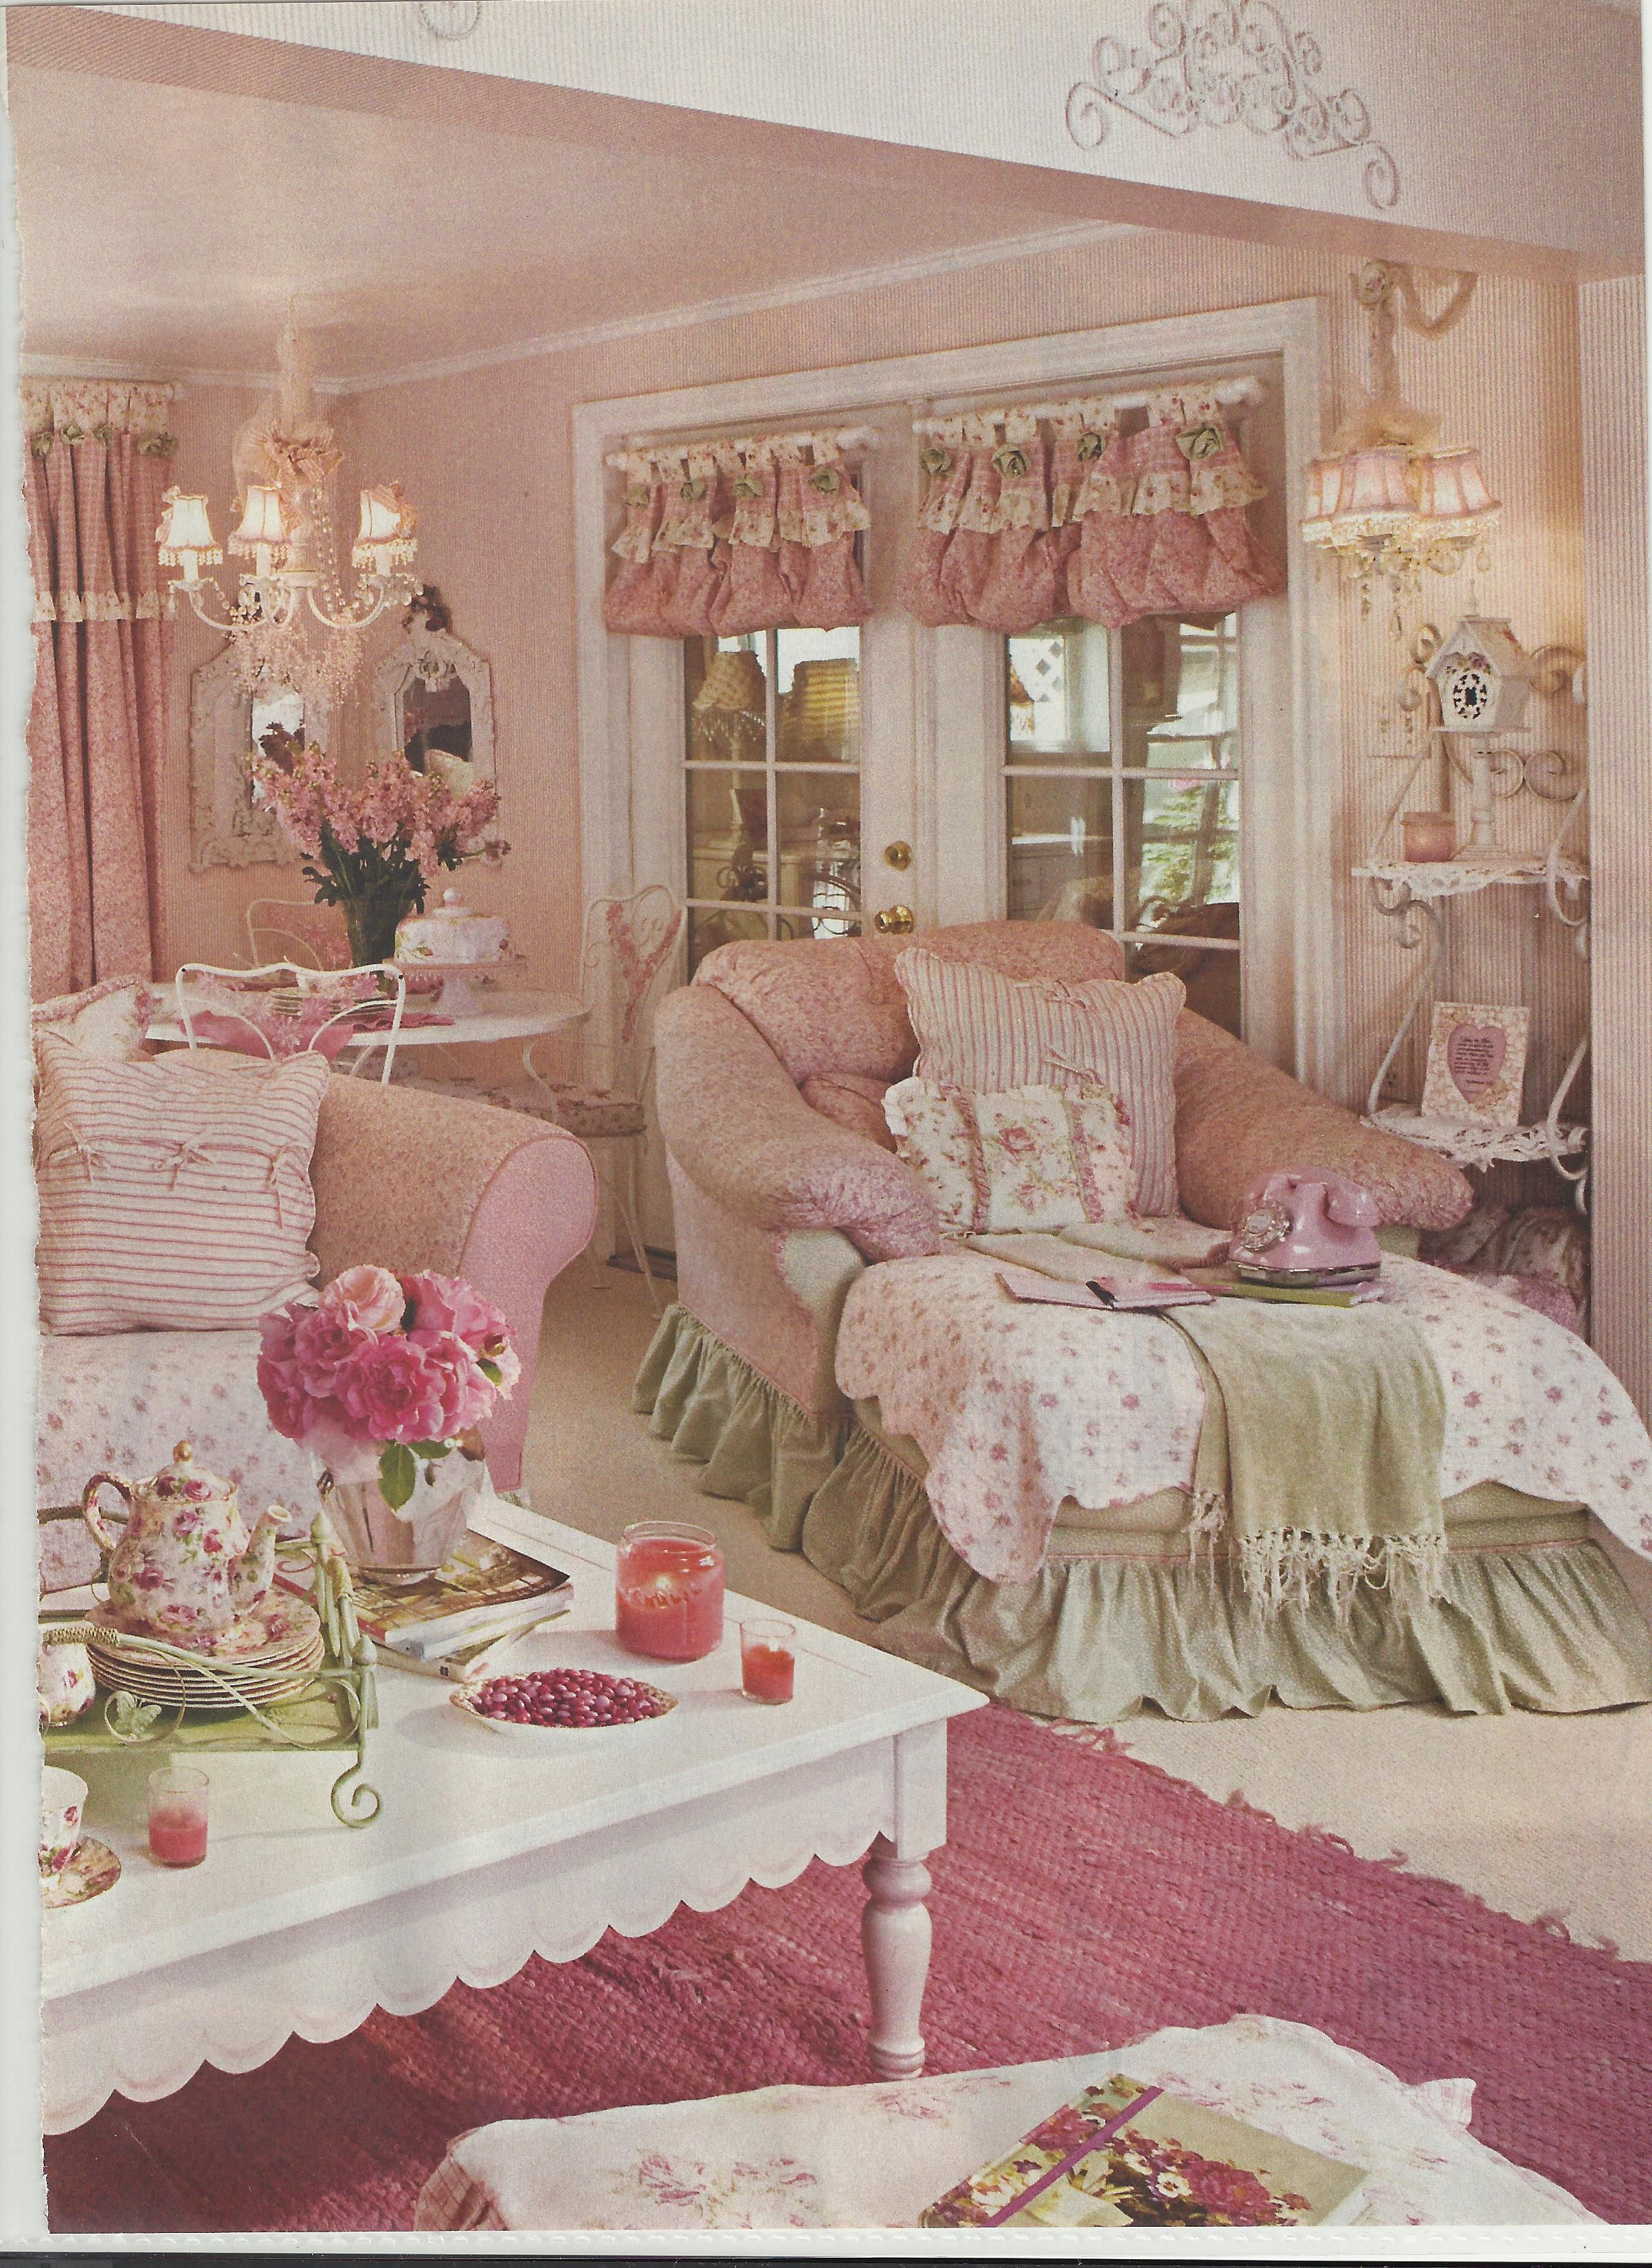 Chambre Style Shabby Chic shabby chic decor. so comfy looking. cozy and inviting